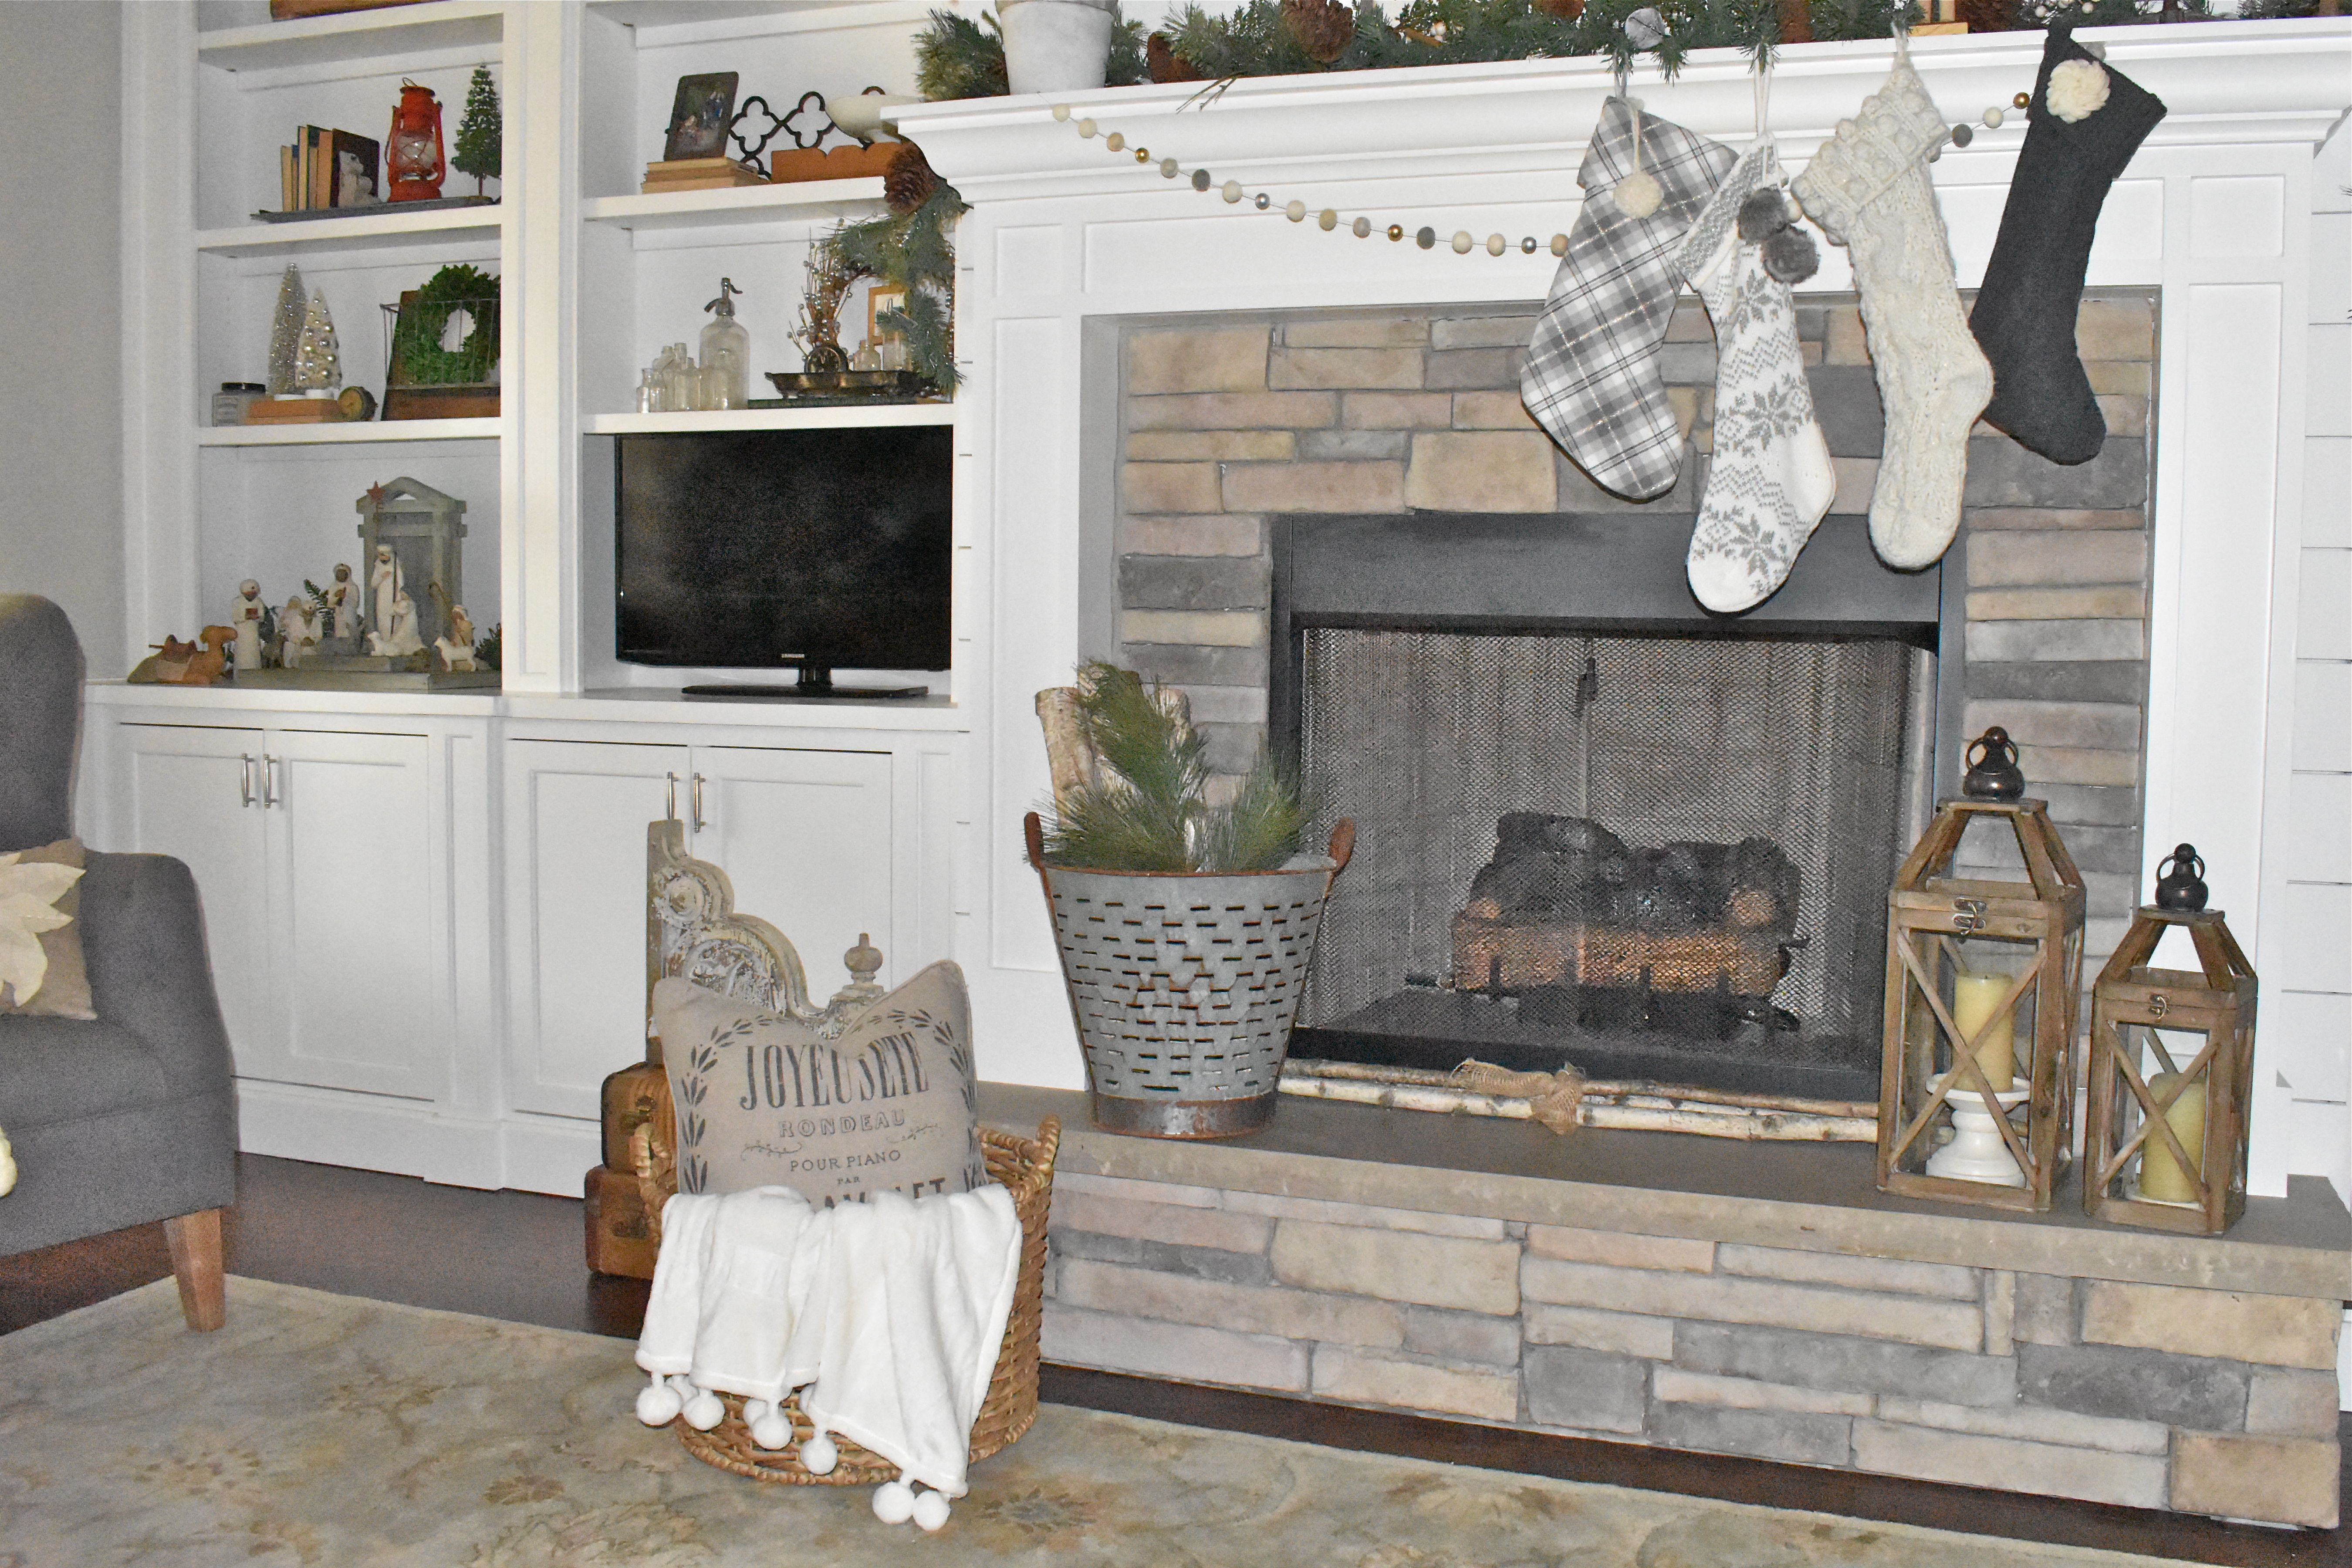 stone-fireplace-and-hearth-with-stockings